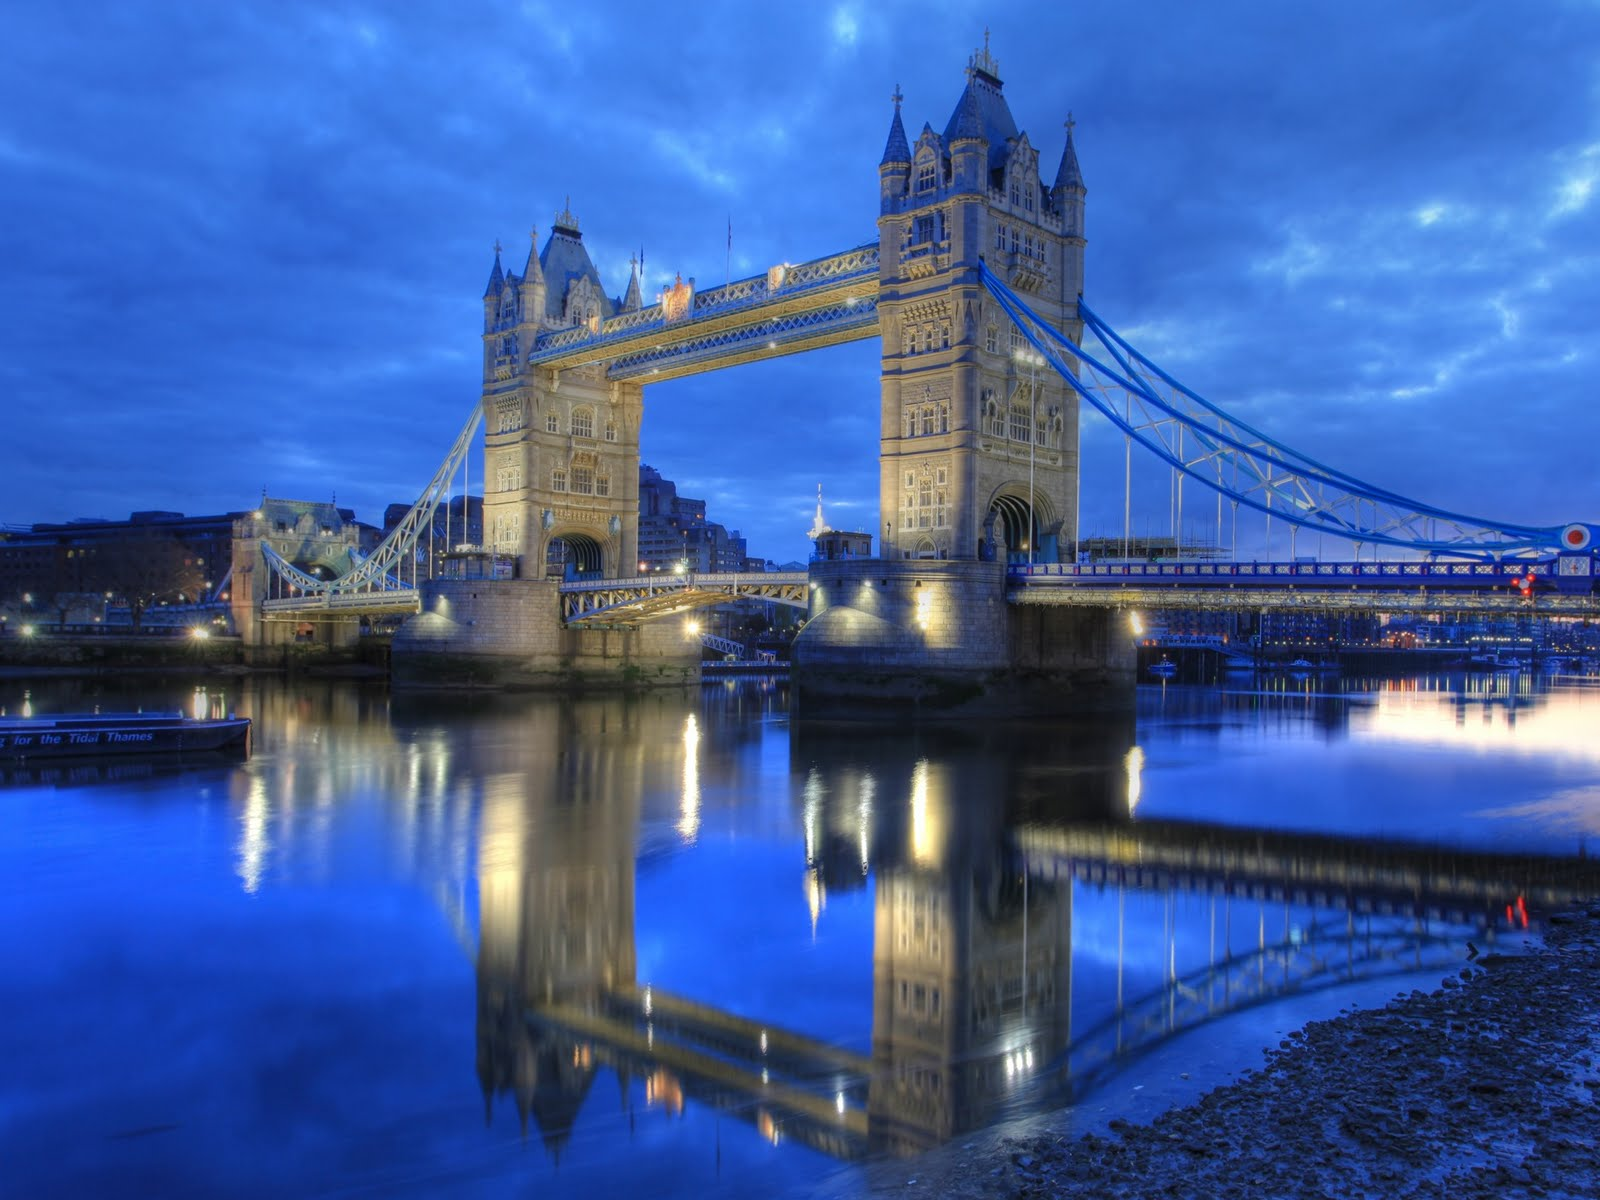 wallpapers england on world - photo #4